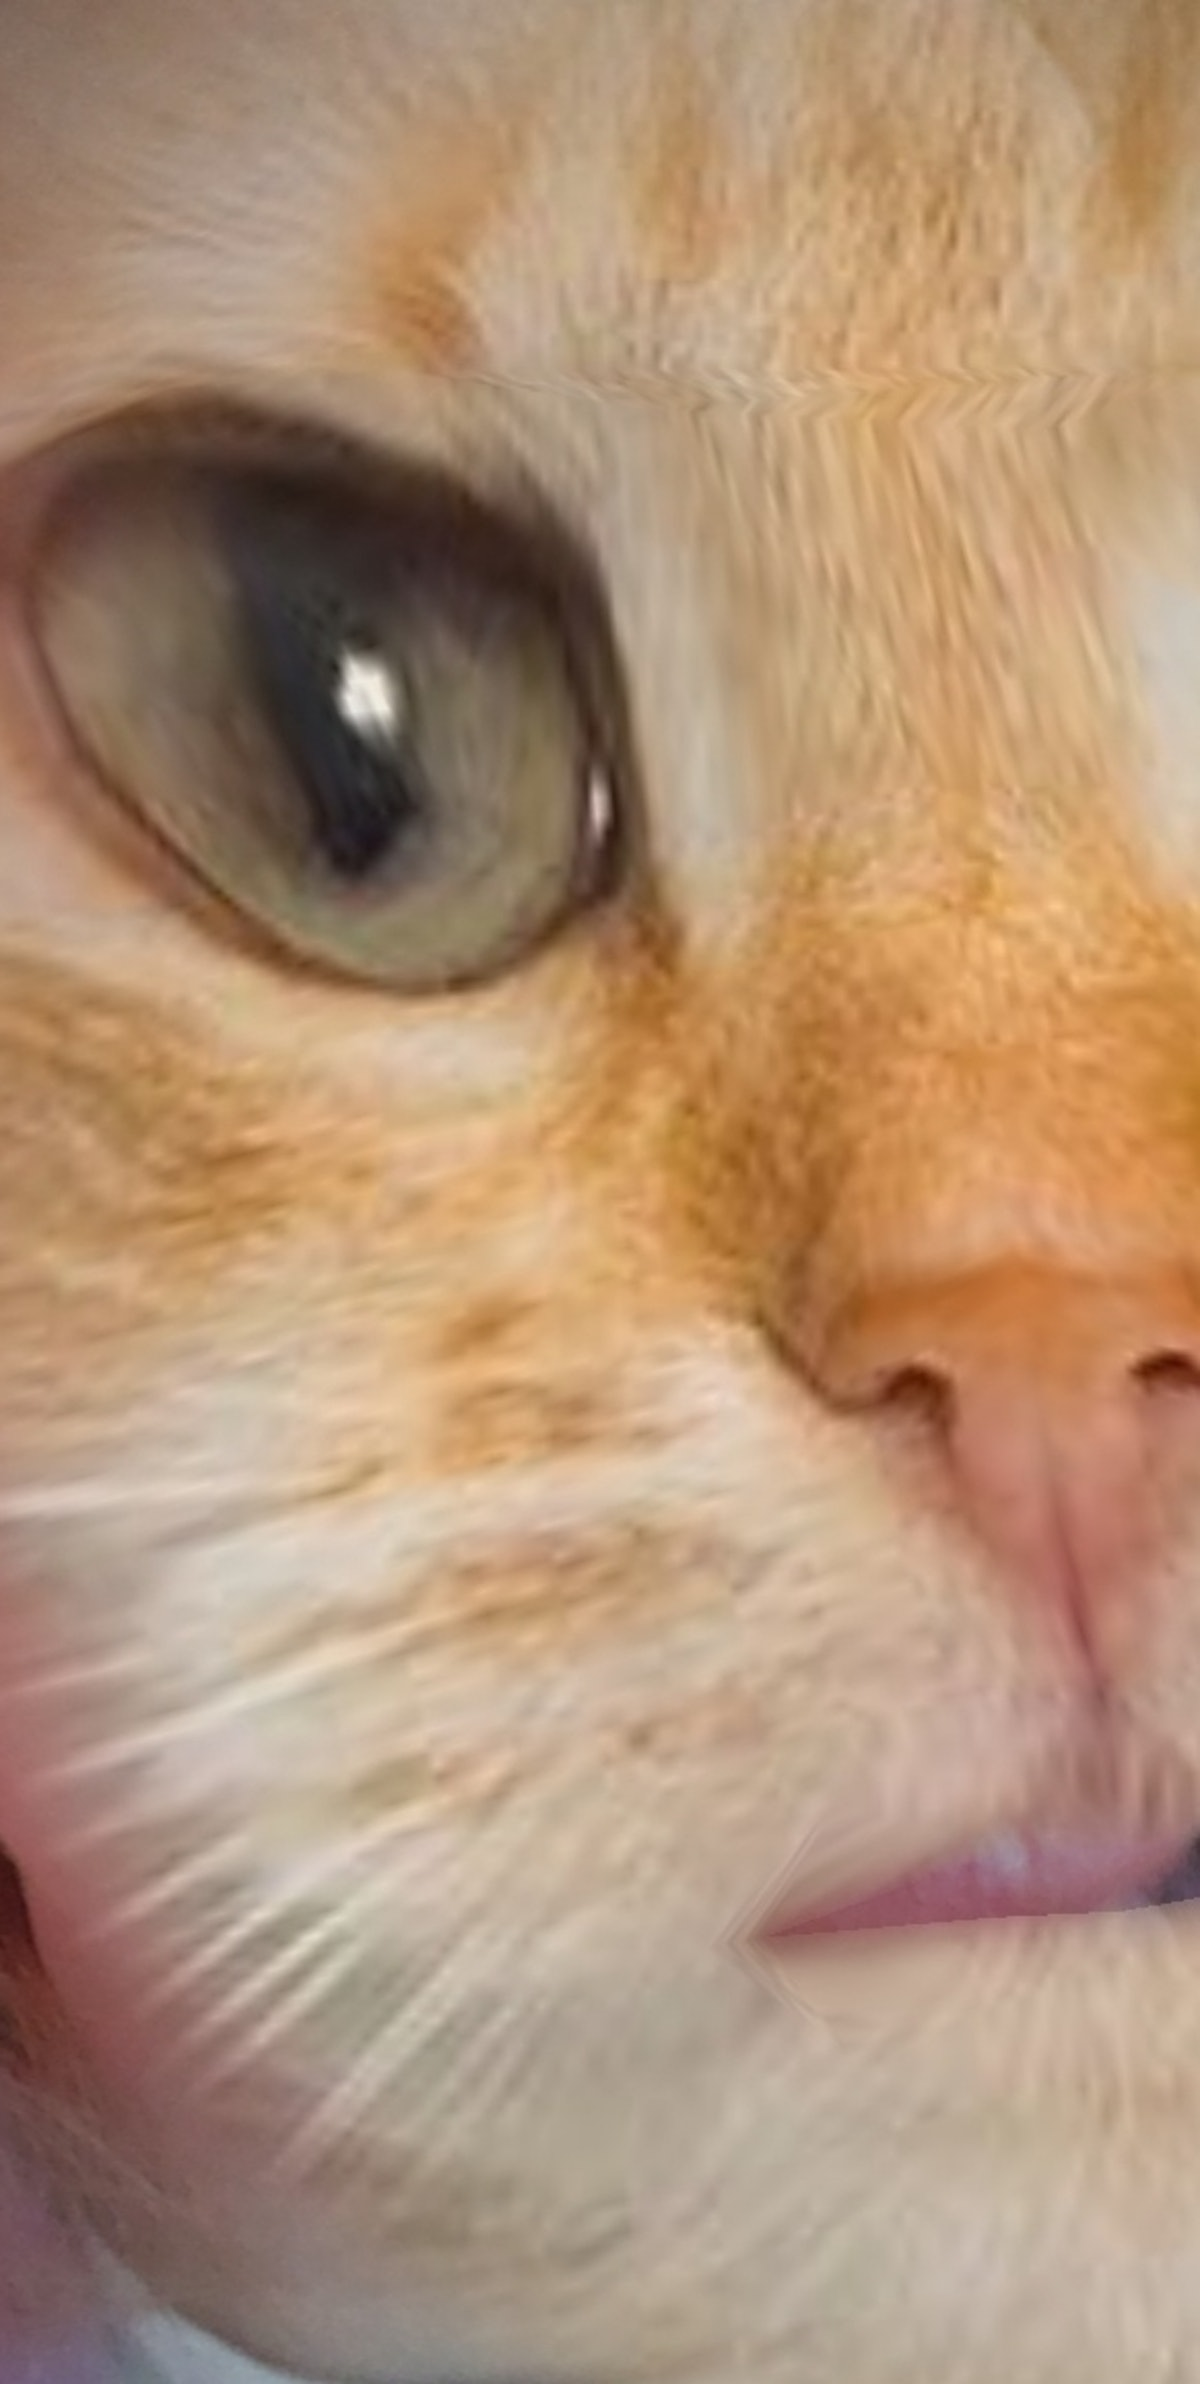 Some of the best cat face filters on Snapchat will help you freak out your feline friend.